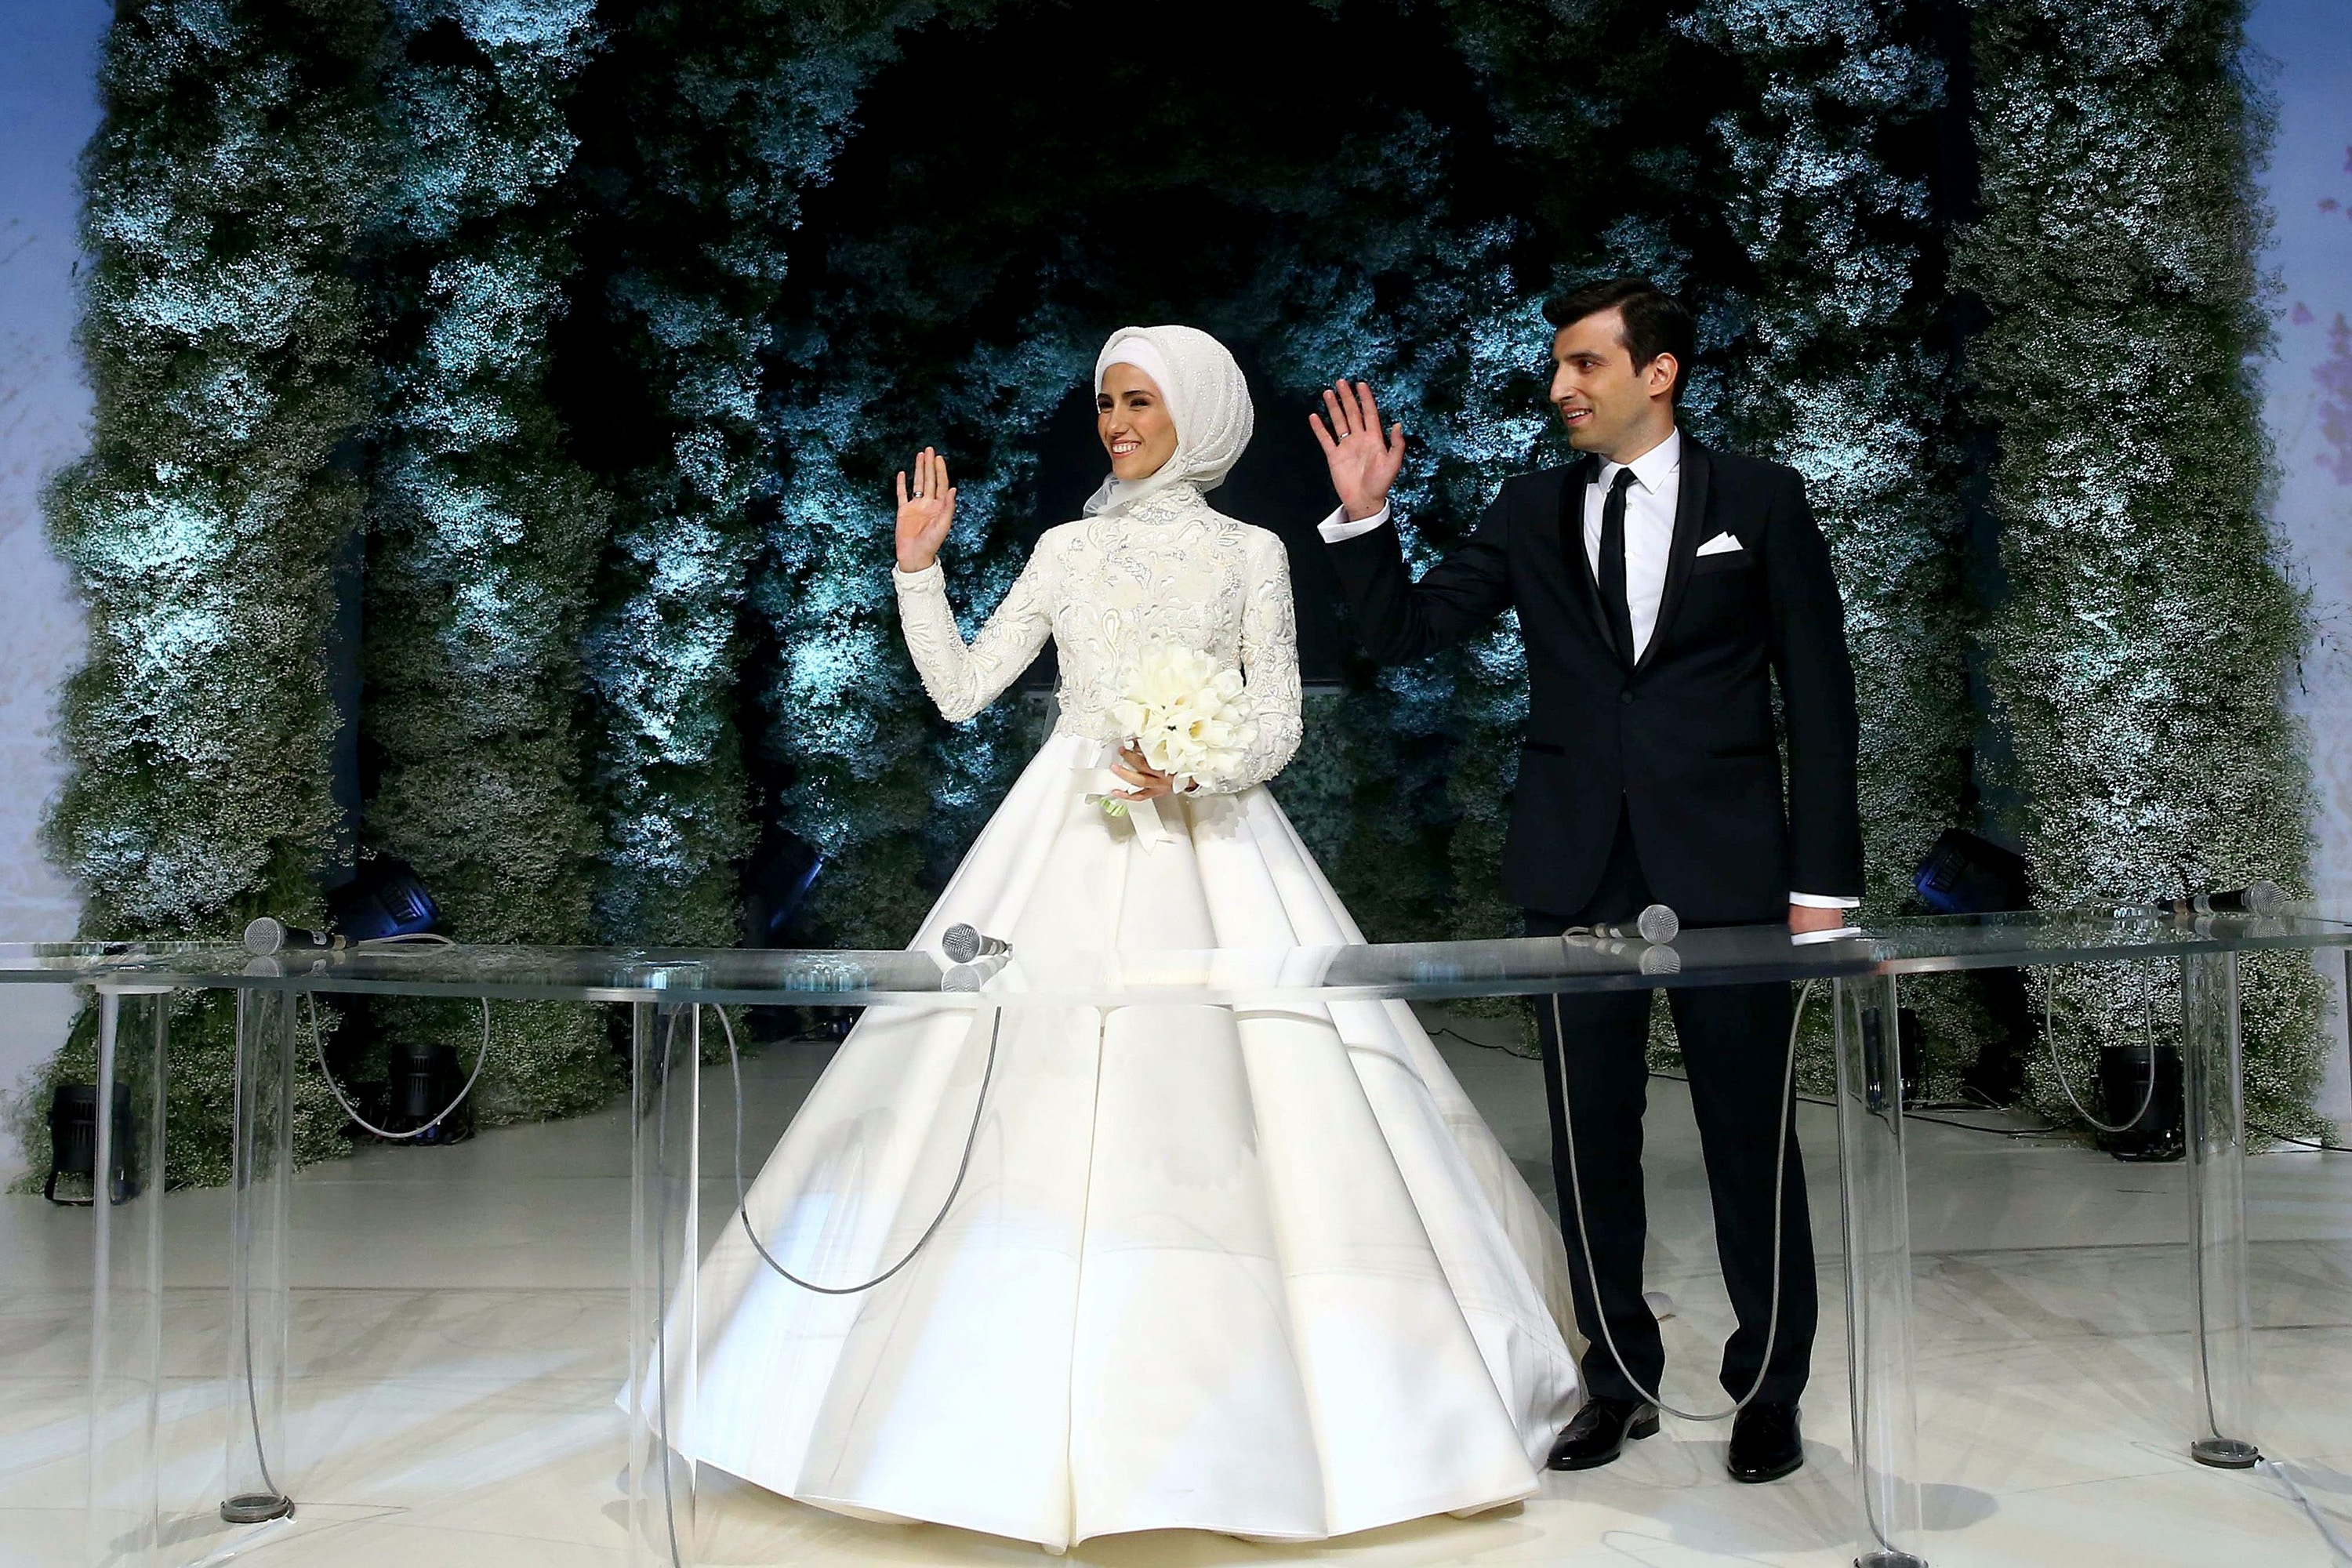 Sumeyye Erdogan, left, and Selcuk Bayraktar wave during their wedding ceremony in Istanbul on May 14, 2016.